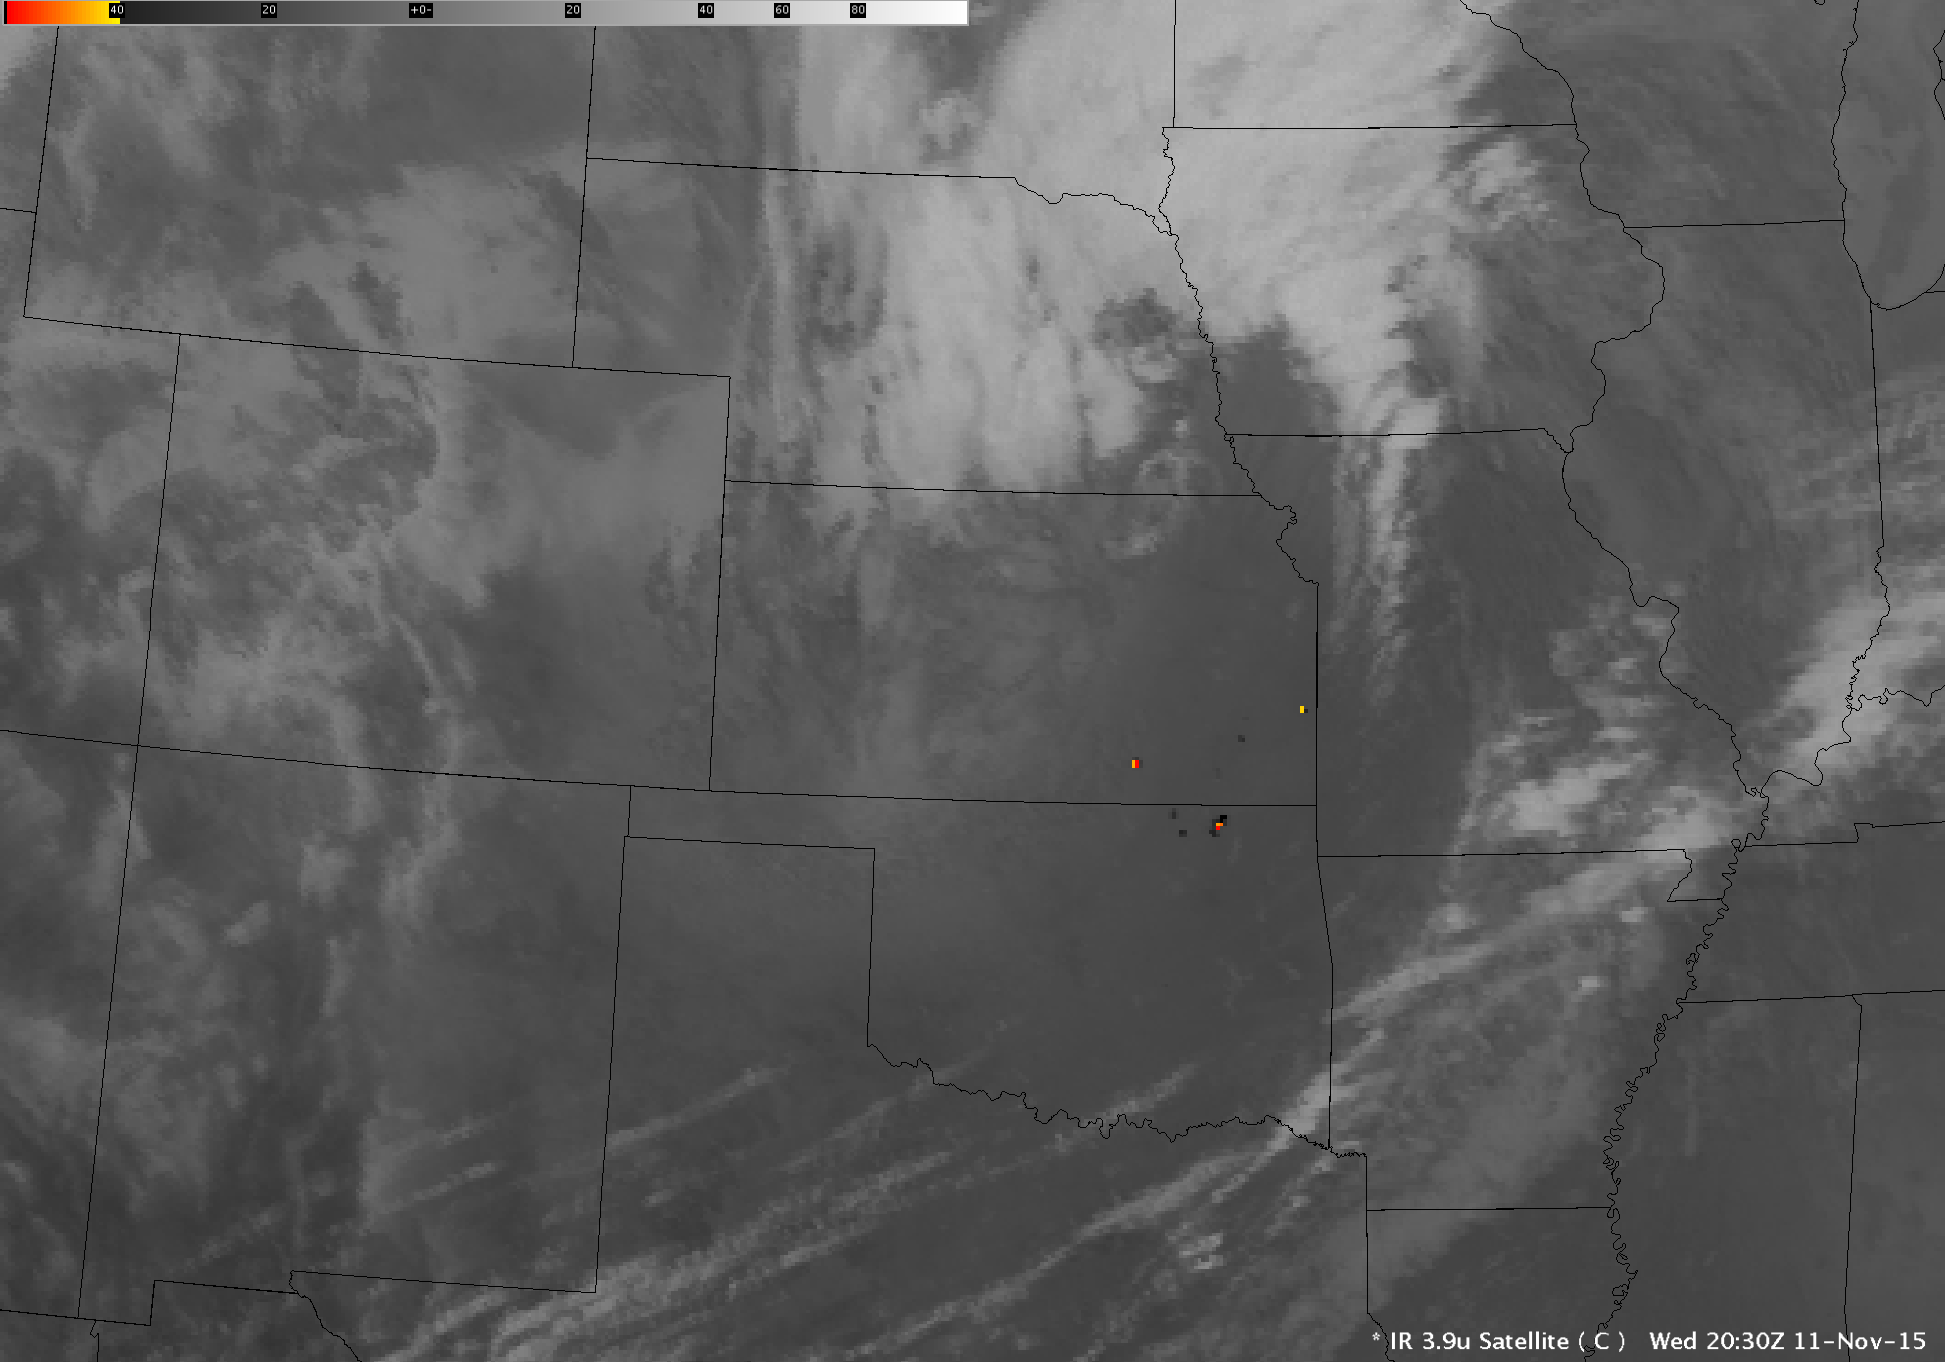 GOES-13 Shortwave Infrared (3.9 µm) images [click to play animation]